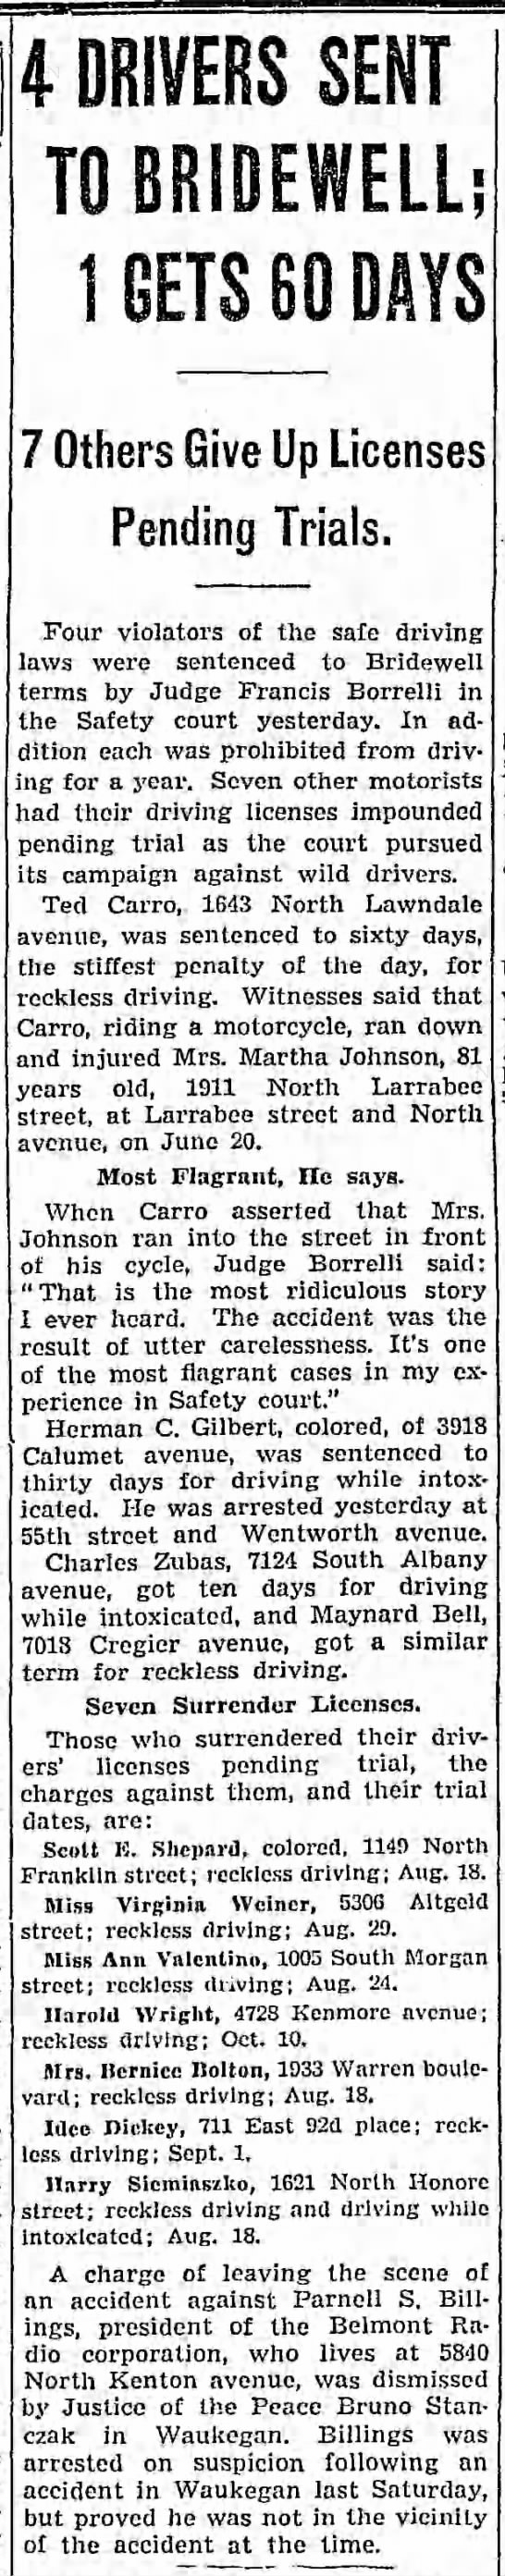 Ted Carro sent to Jail Chicago Tribune 12 Aug 1939 - 4 DRIVERS SENT TO BRIDEWELL; 1 GETS 60 DAYS 7...